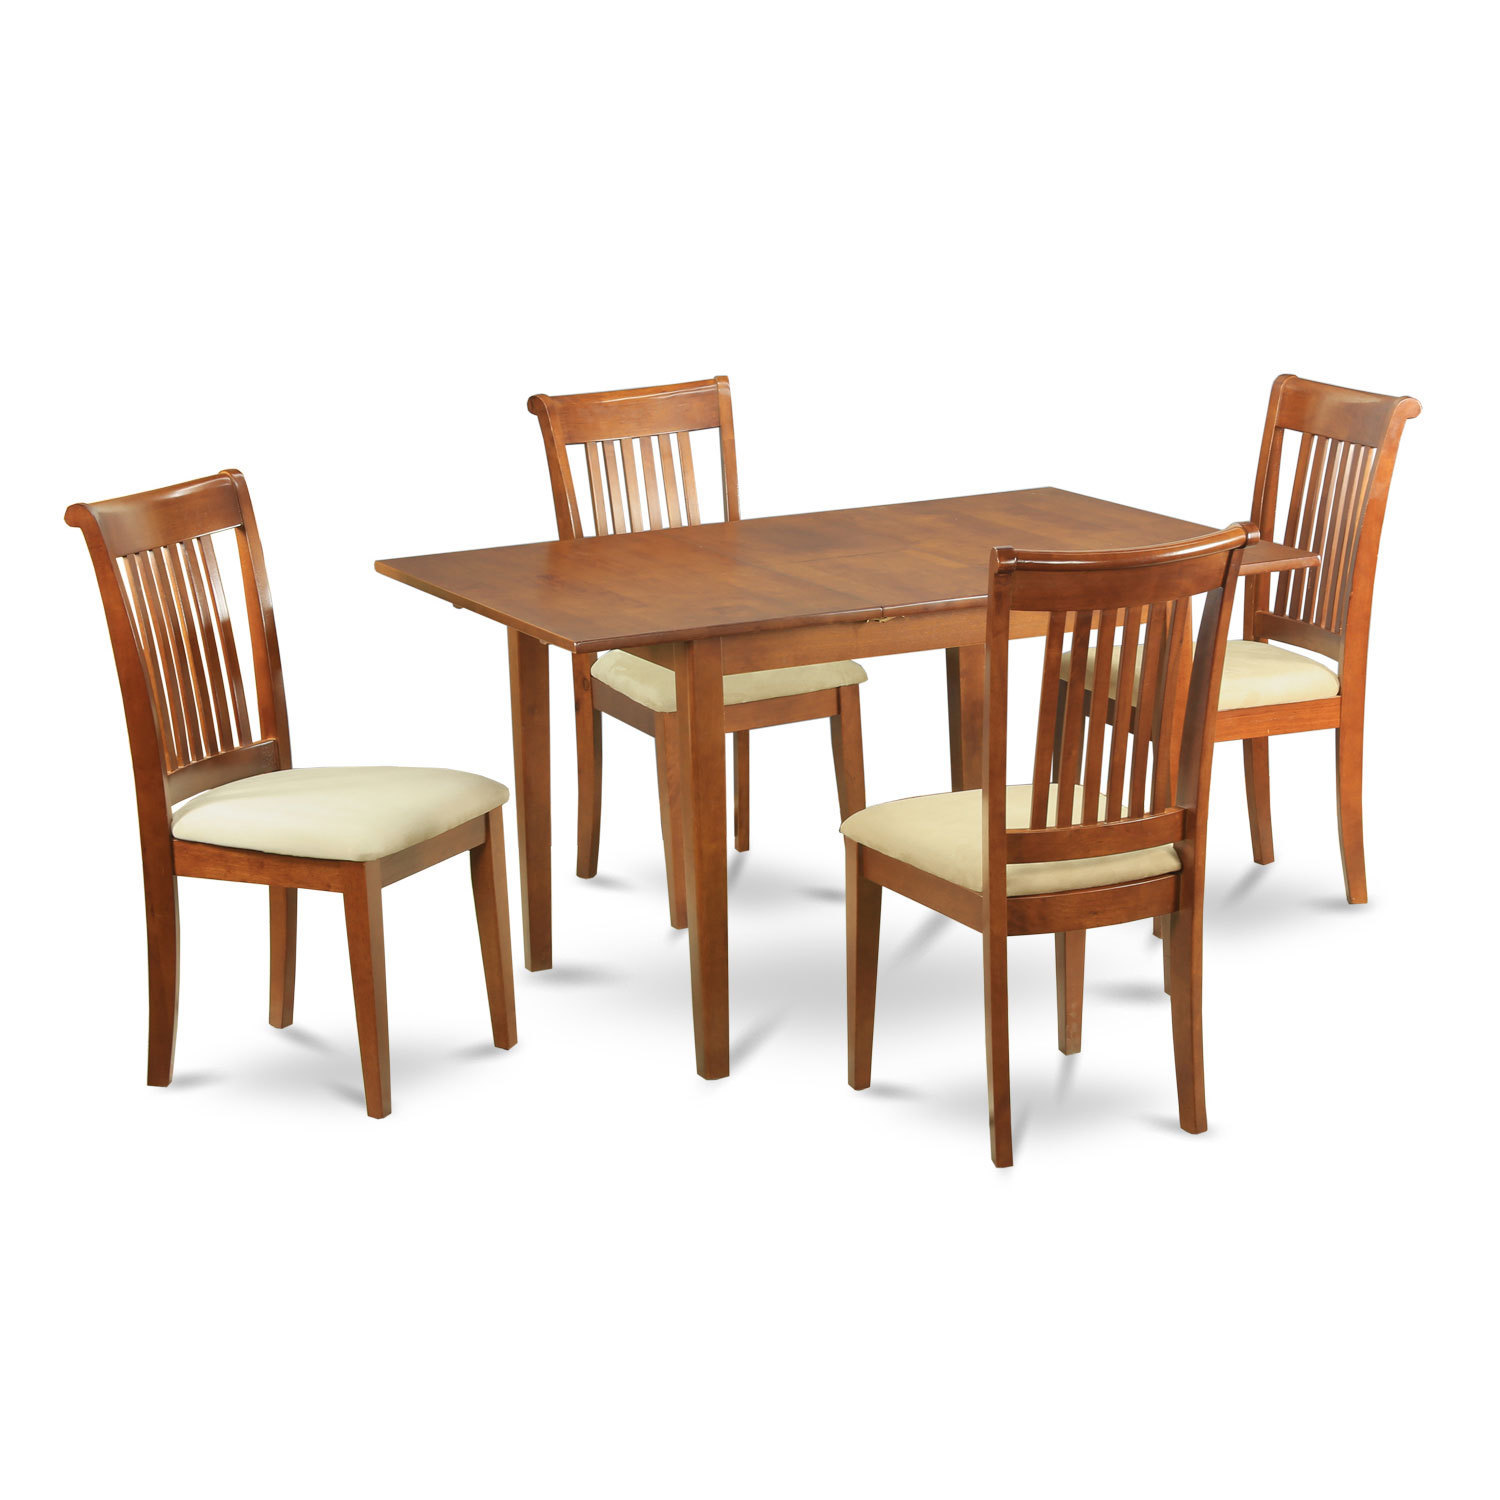 Small dinette set design homesfeed for Breakfast table and chairs